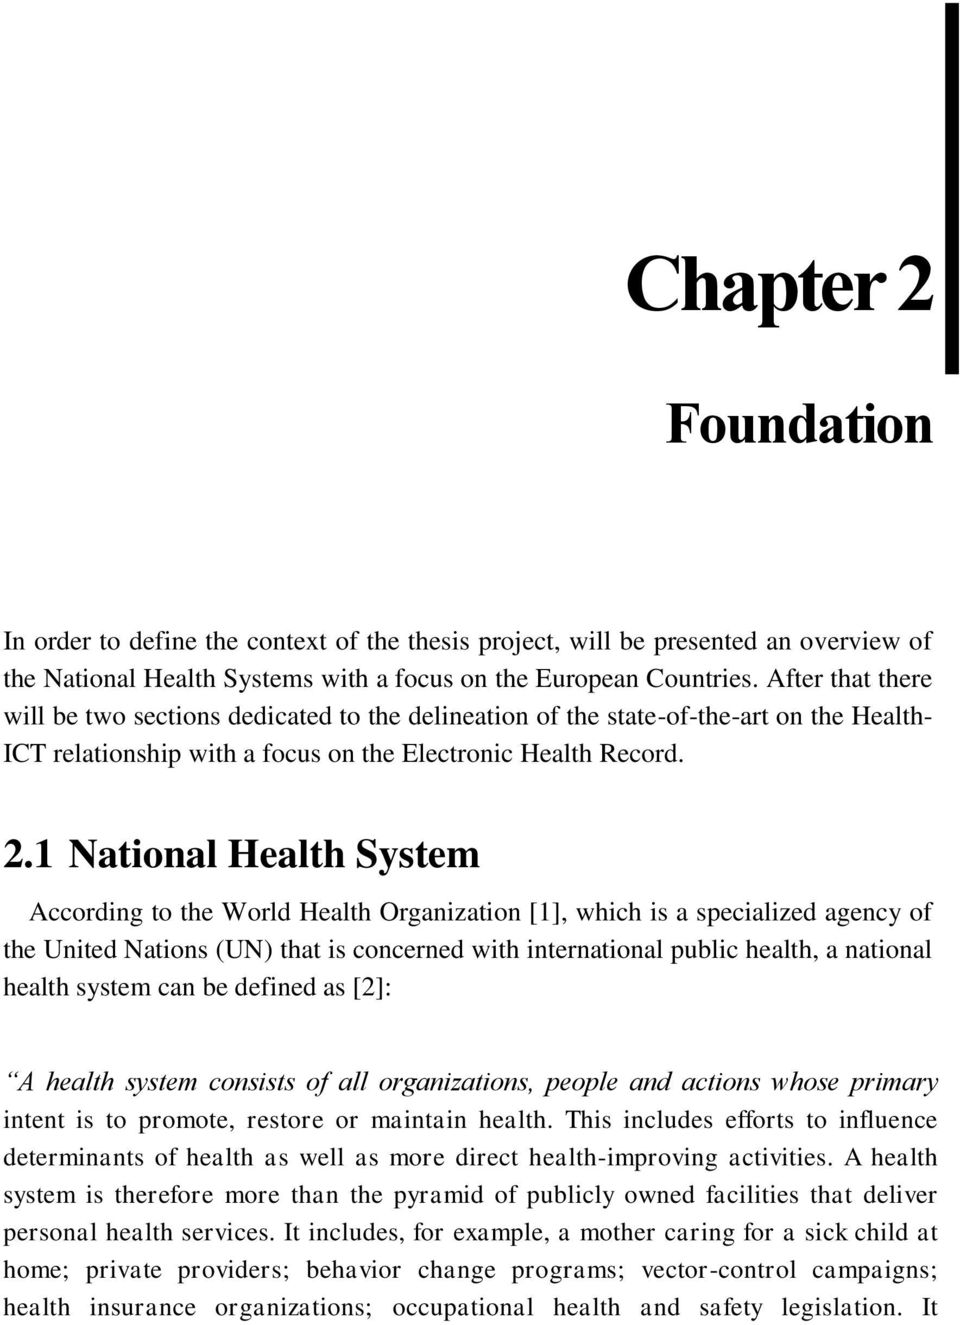 1 National Health System According to the World Health Organization [1], which is a specialized agency of the United Nations (UN) that is concerned with international public health, a national health